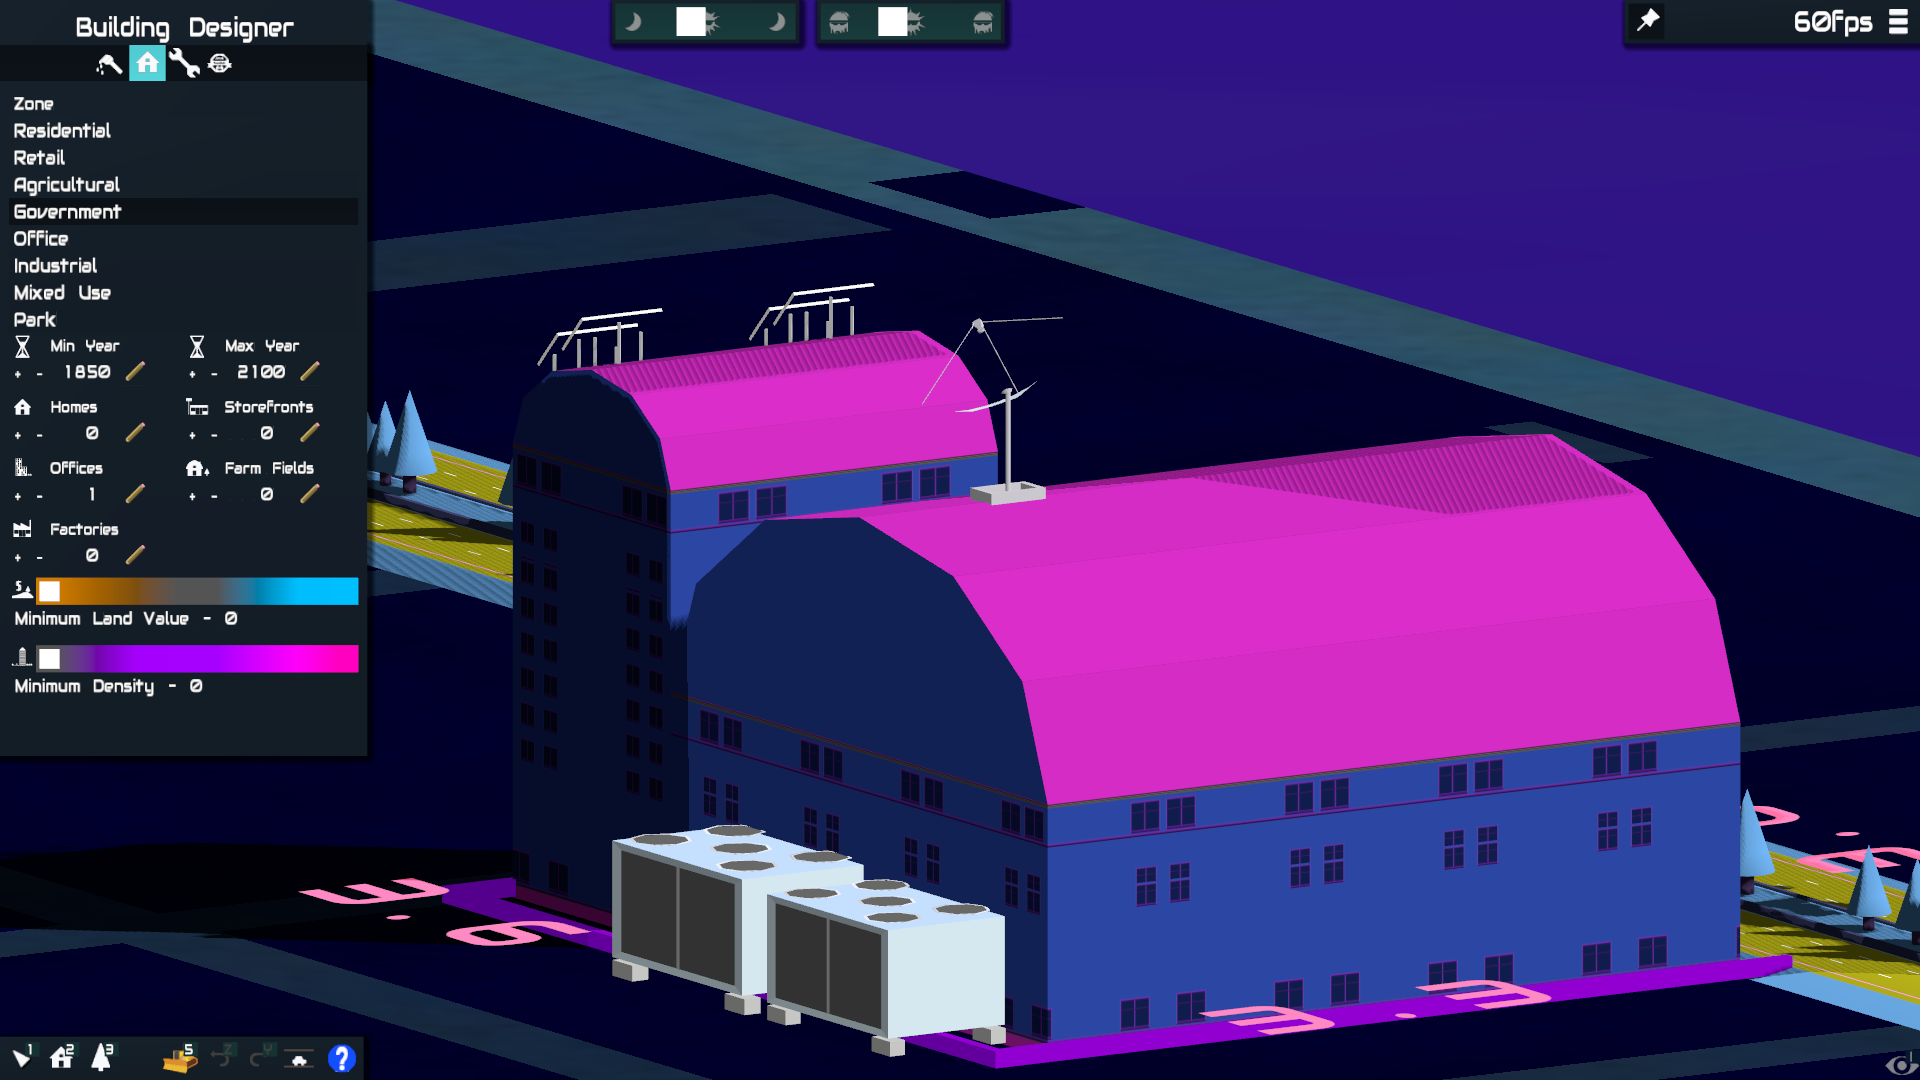 It's easy to make an ominous looking building in Vaporwave